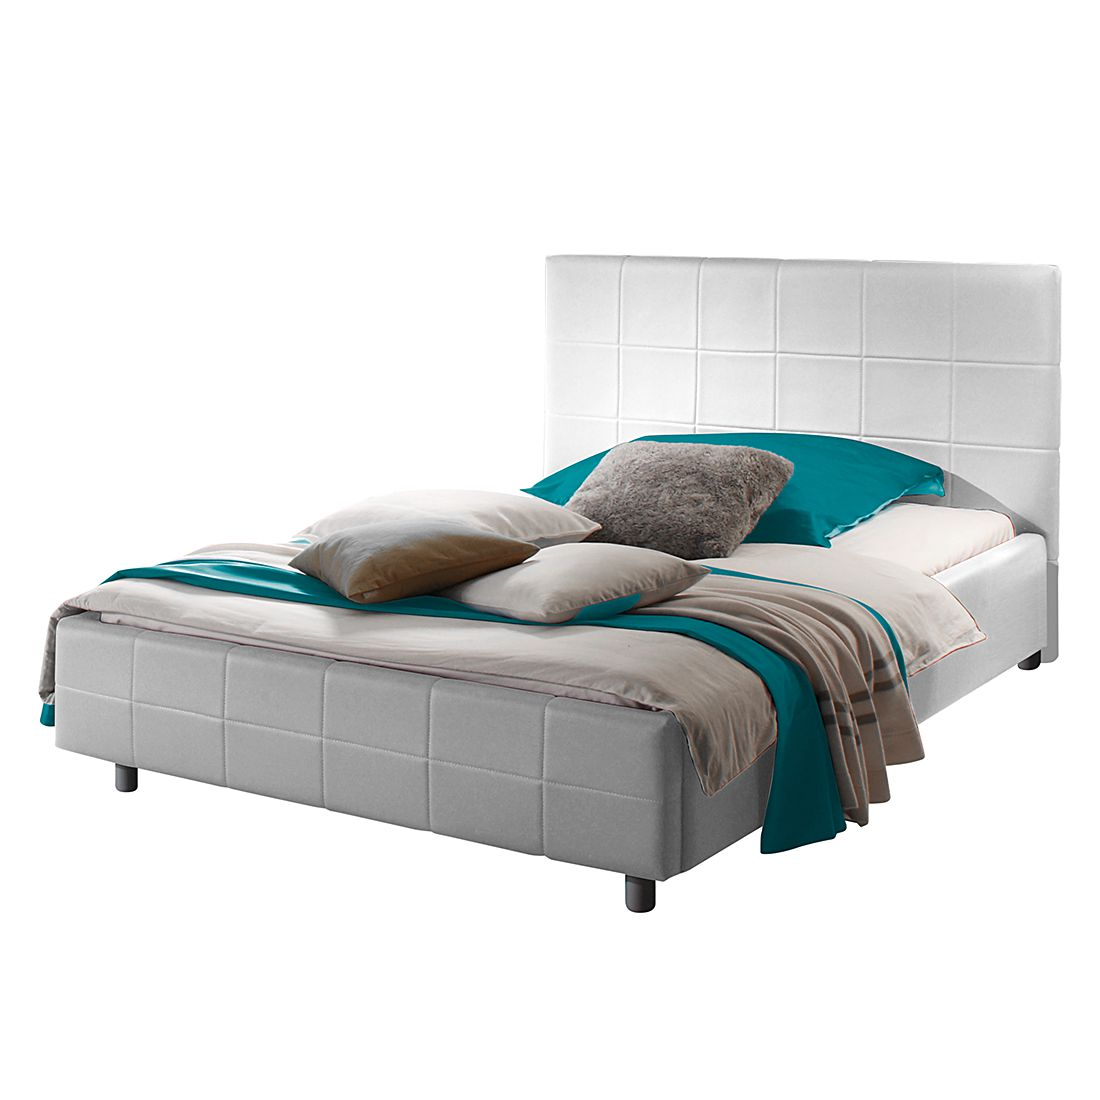 Gestoffeerd bed Smart, LC Mobili